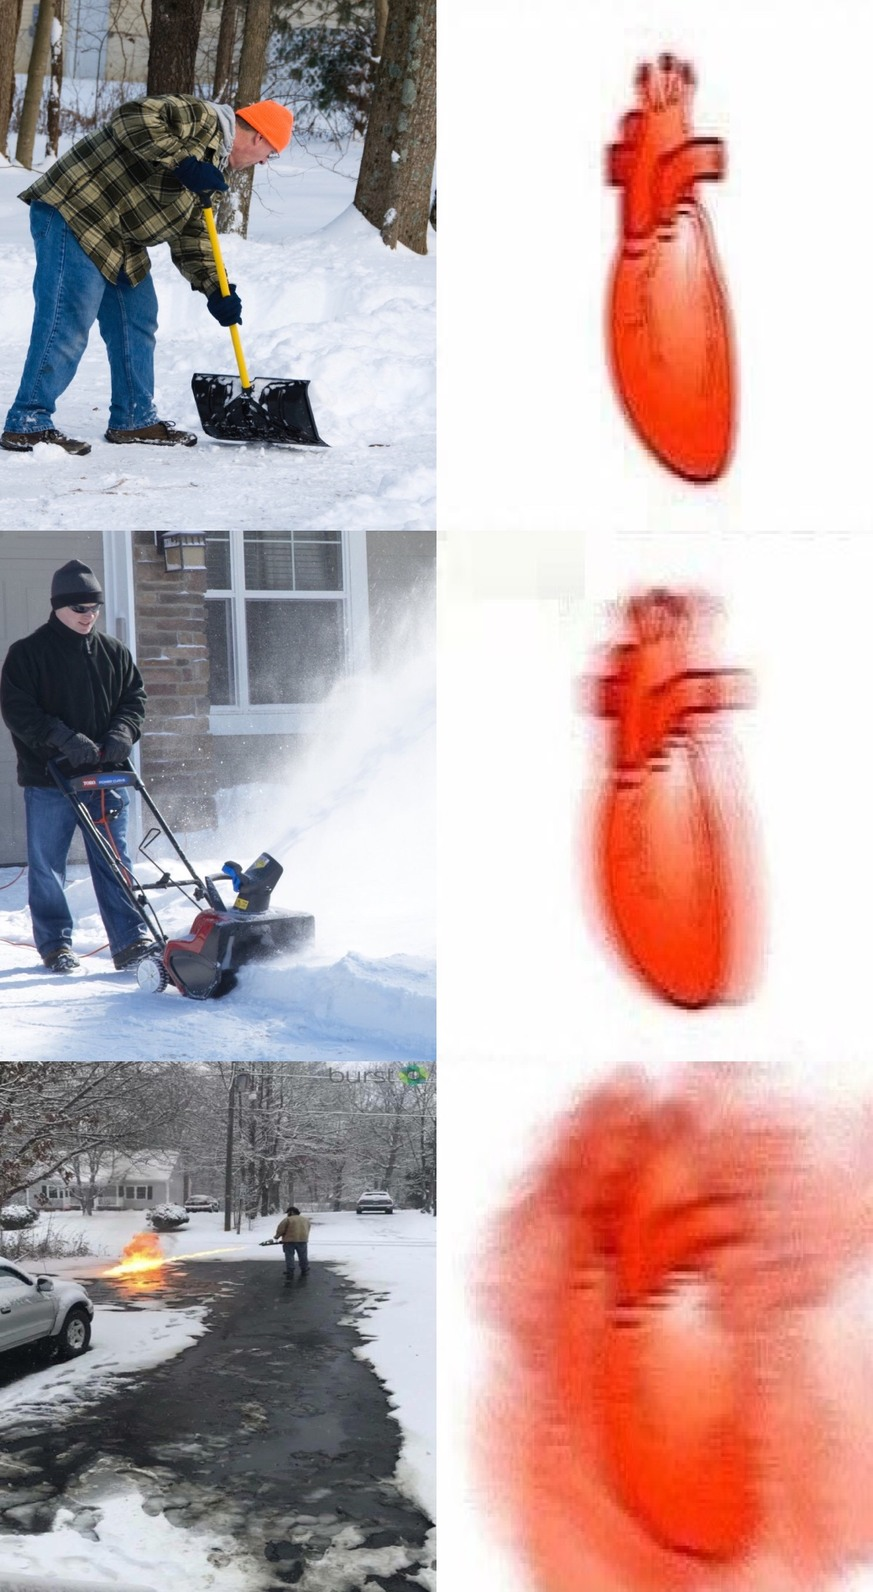 Man in Fargo arrested for clearing snow with flamethrower - meme